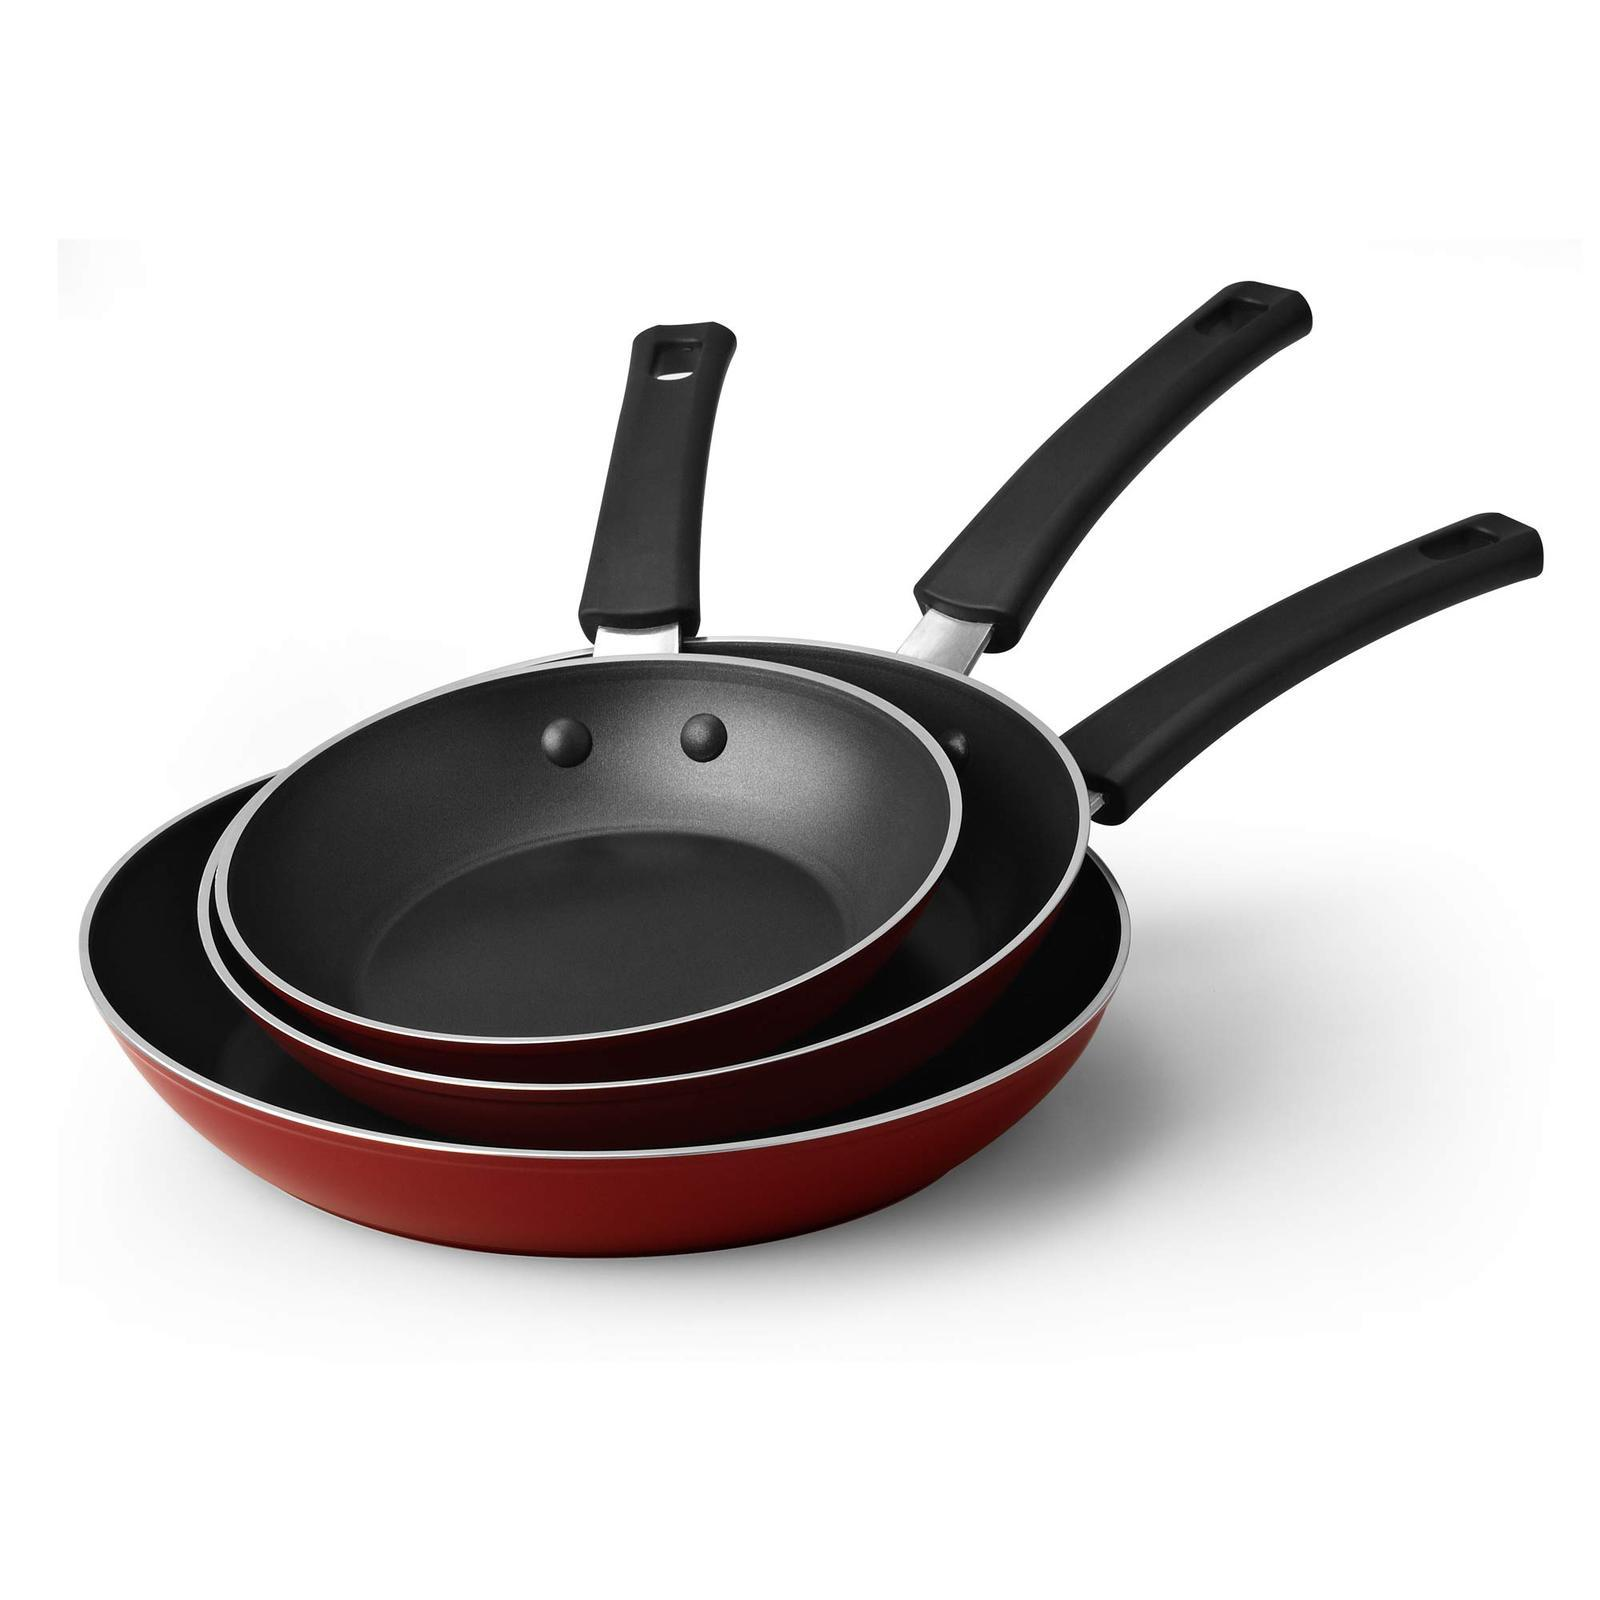 Cook N Home 02614 3-Piece Fry Pan Set, 8, 9.5, and 11-Inch, Red